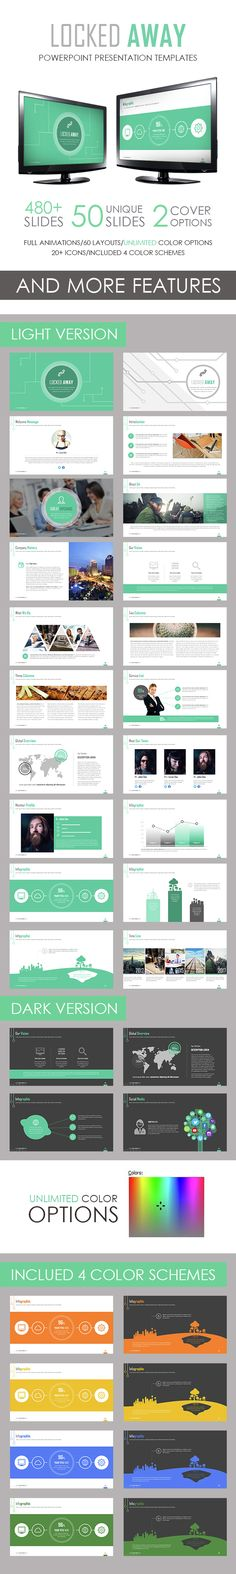 3D Printing (Powerpoint Templates) | 3D Printing, 3D And